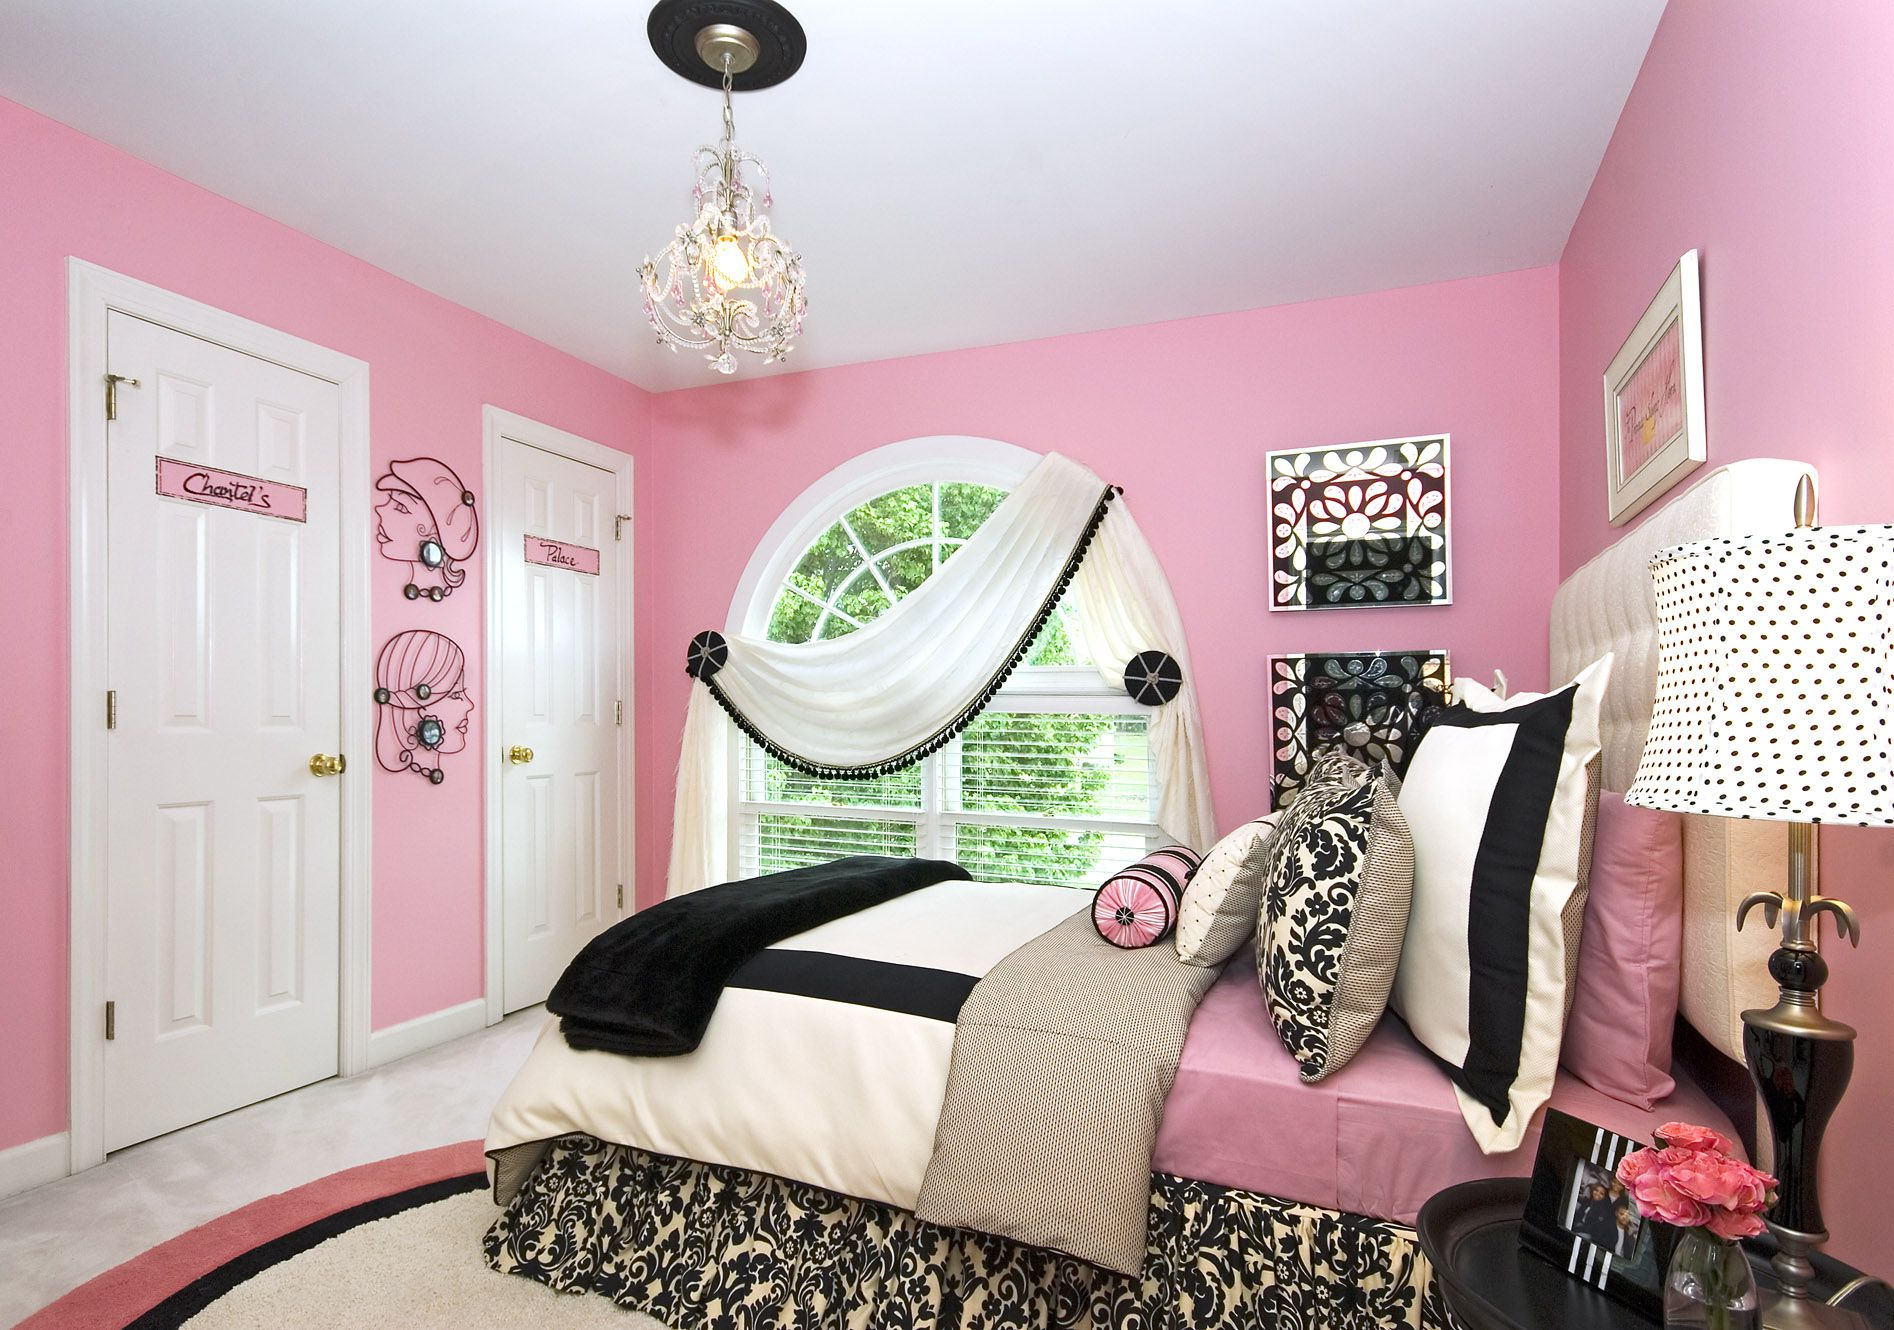 Pictures Of Girls Bedrooms Simple Design Tips For Girls' Bedrooms  Midcityeast